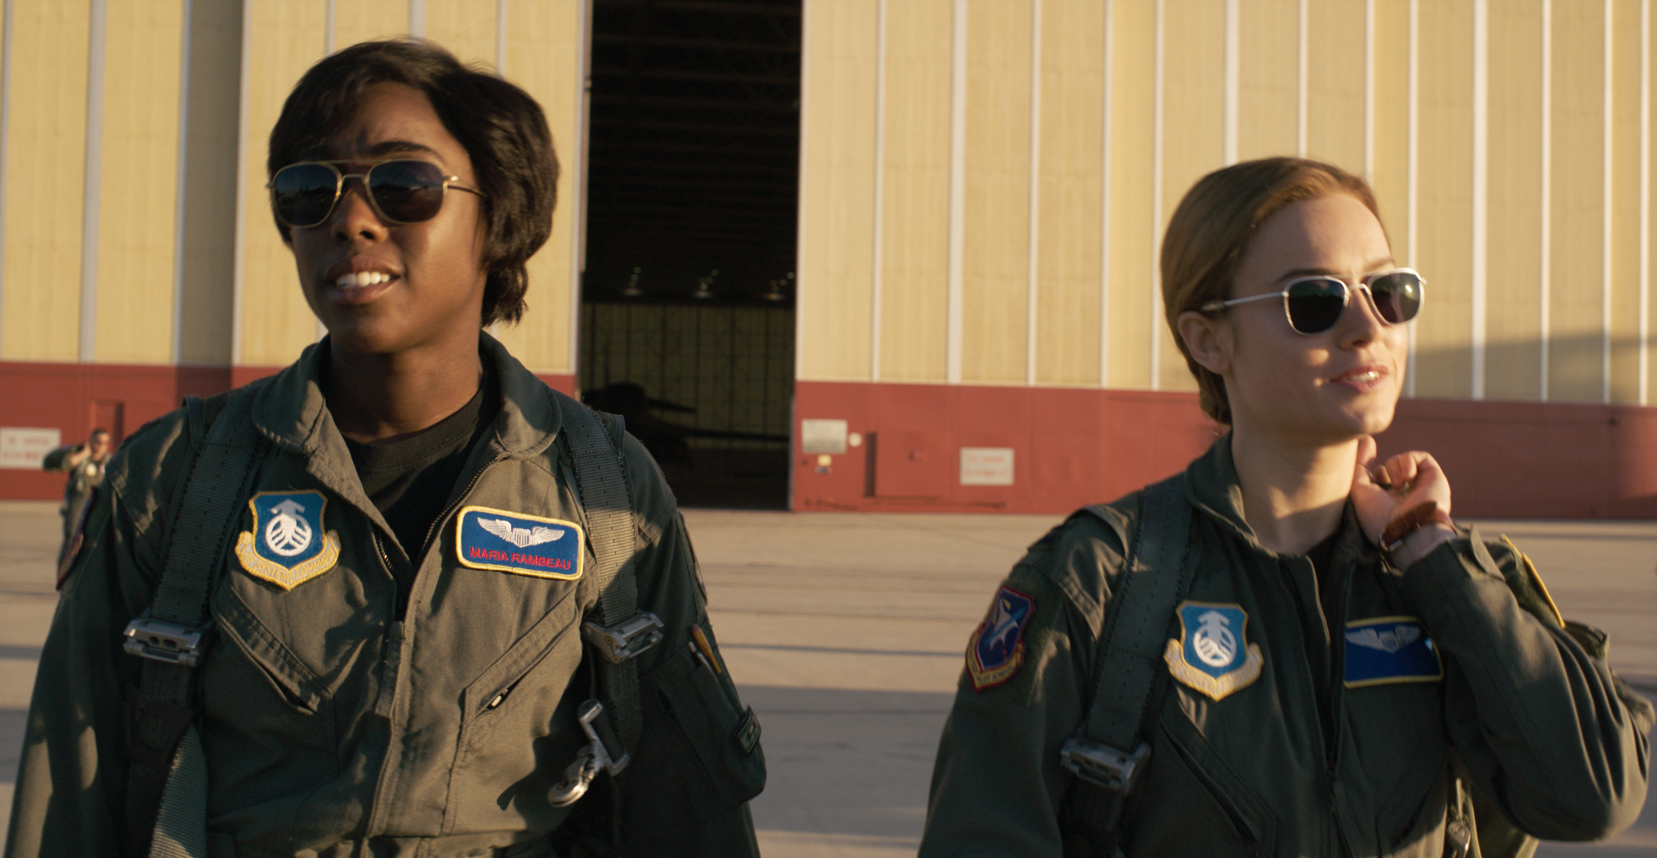 Brie Larson and Lashana Lynch in Captain Marvel (2019)